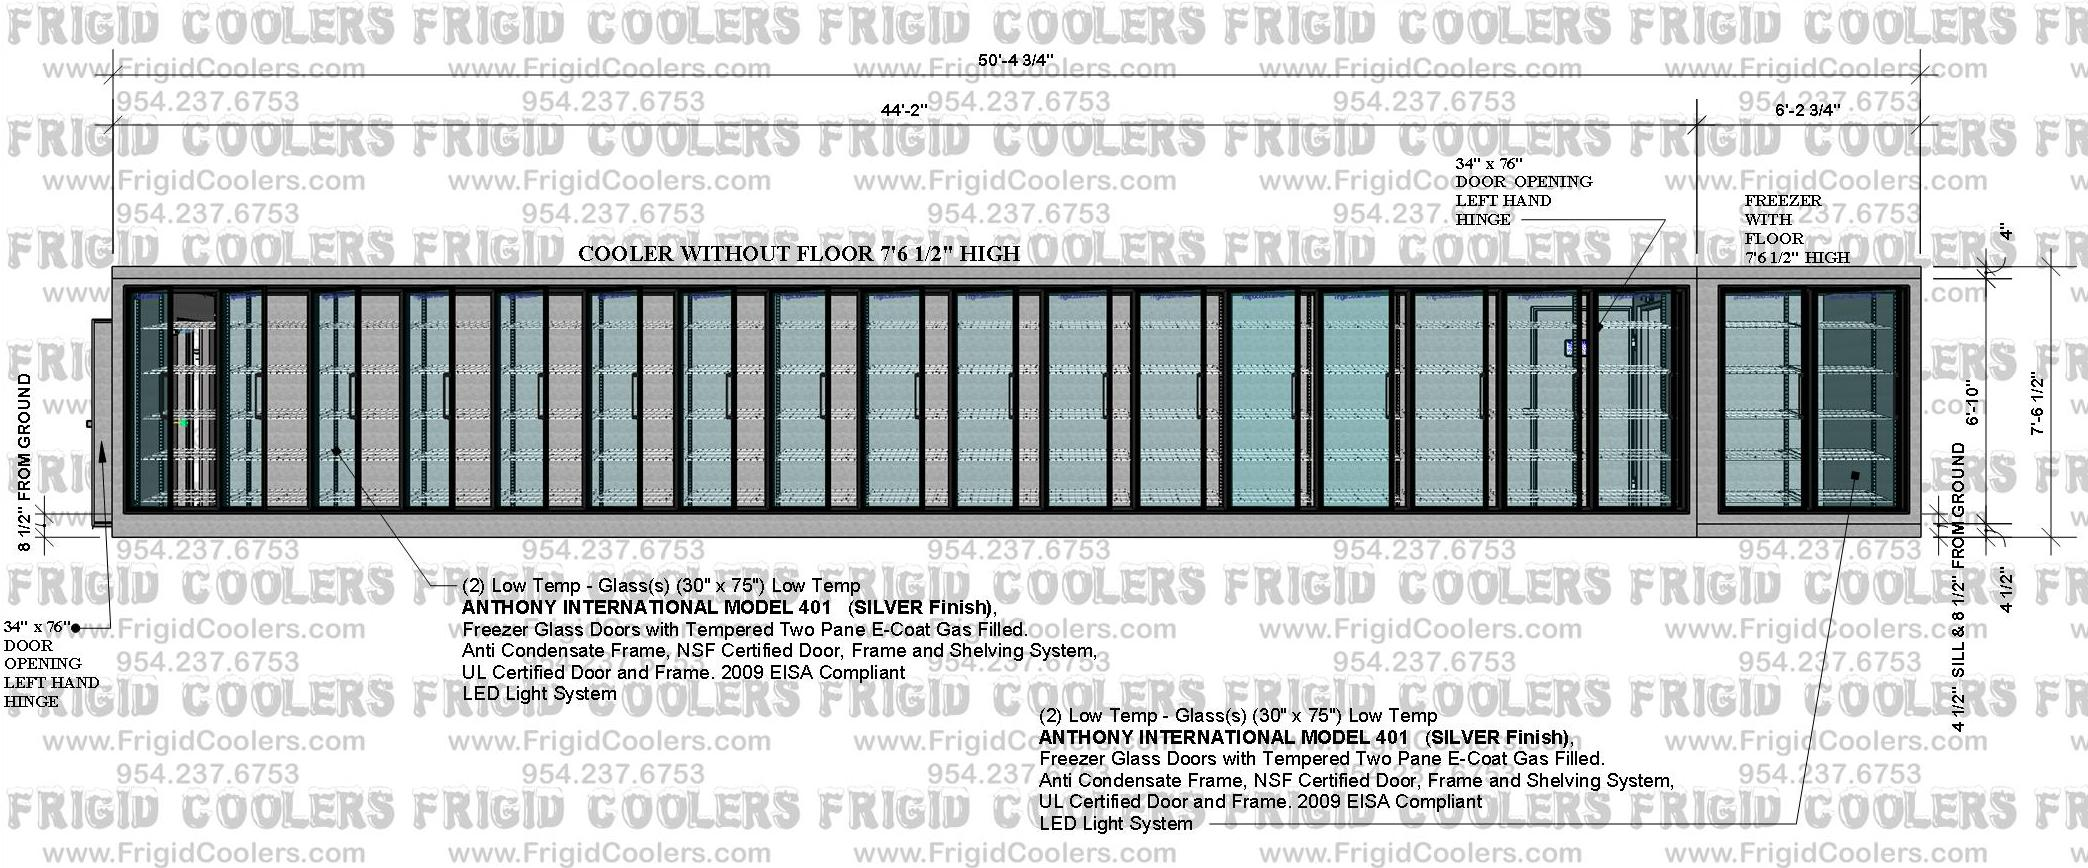 DISPLAY GLASS DOOR COOLER AND FREEZER 8X50-4X7-6 17-COOLER DOORS AND 2- FREEZER DOORS  (2)